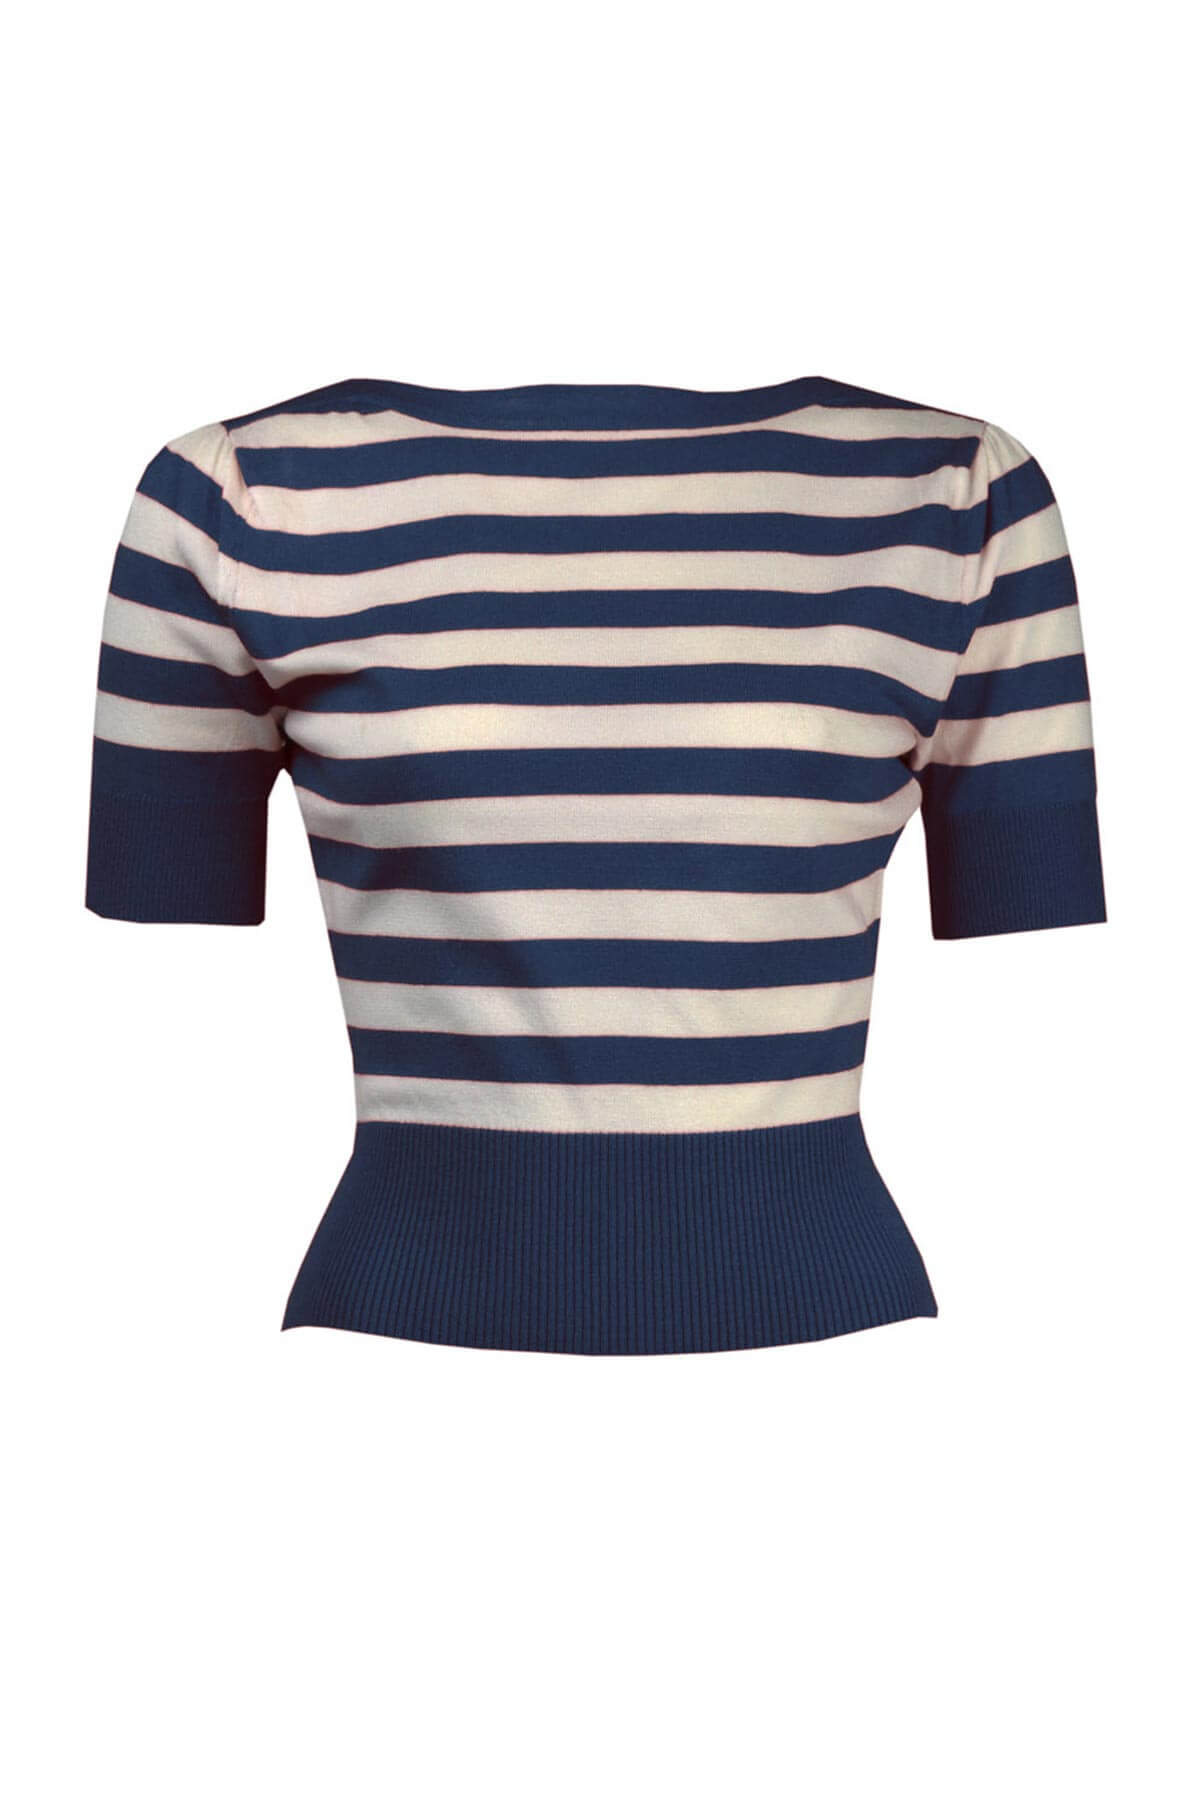 Navy and White Striped Boat Neck Jumper - Weekend Doll